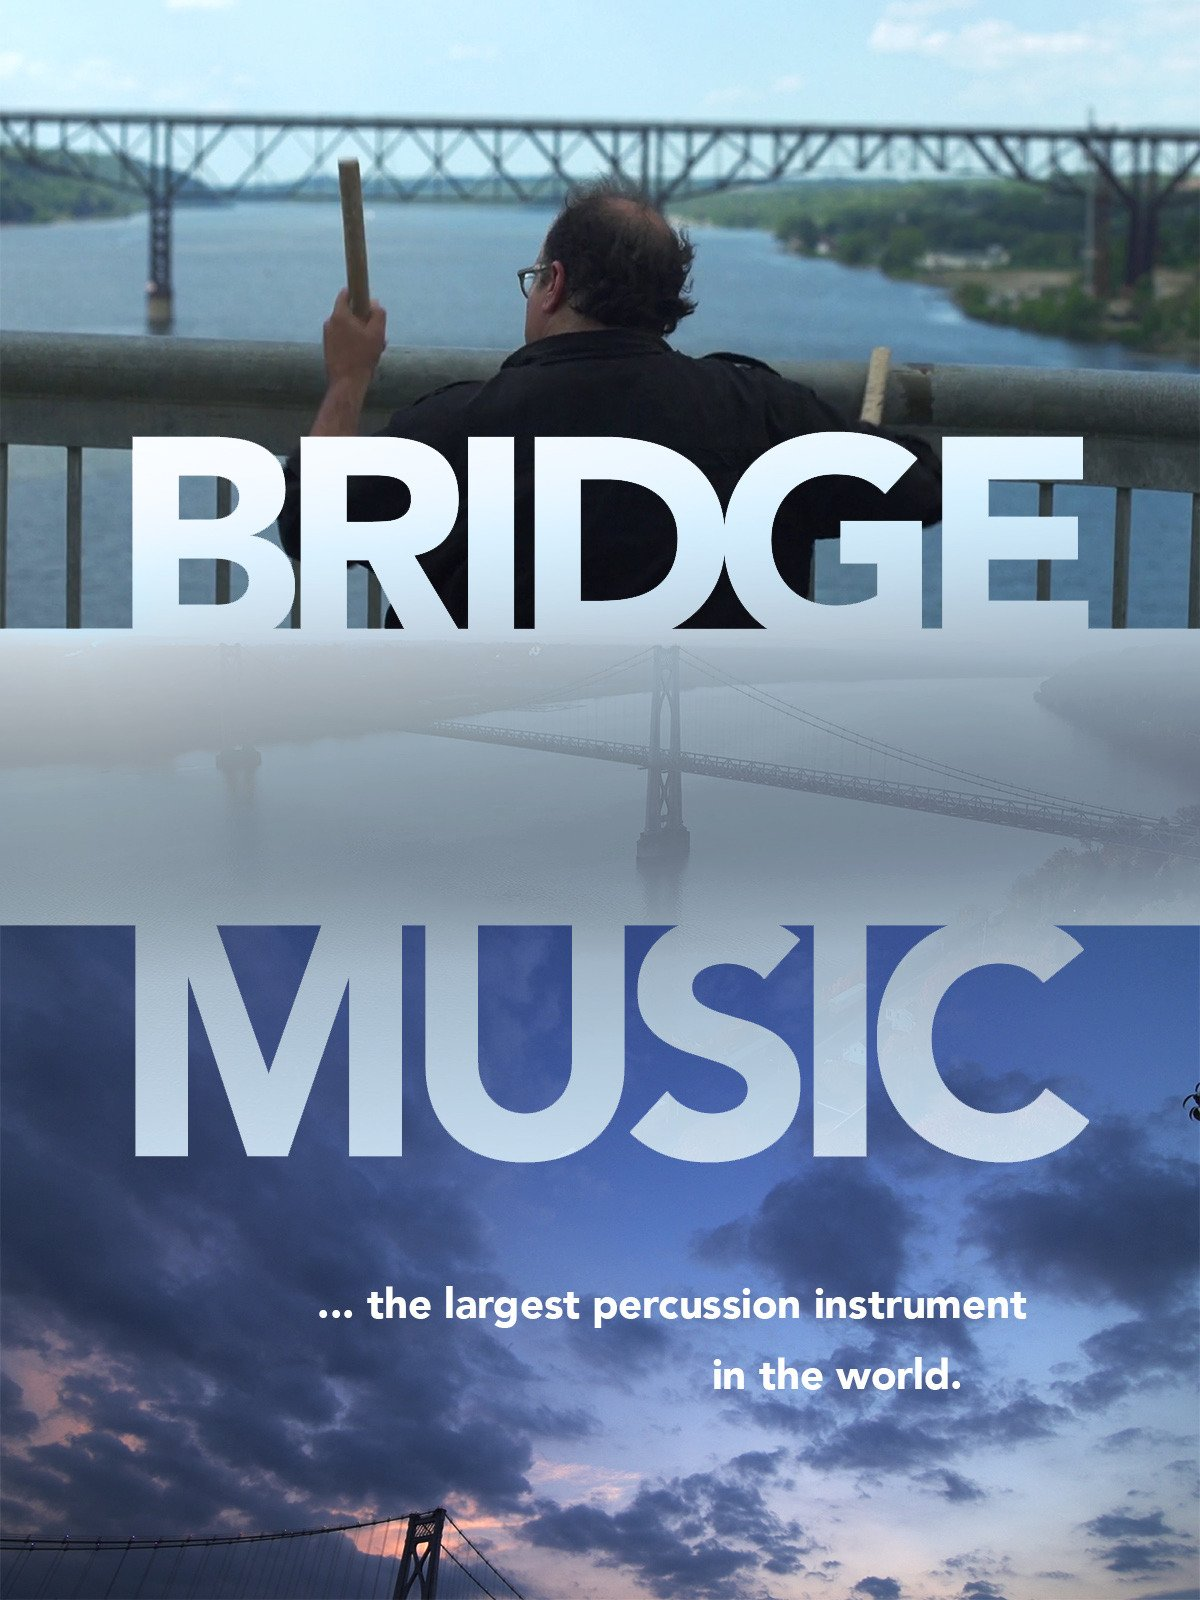 Bridge Music